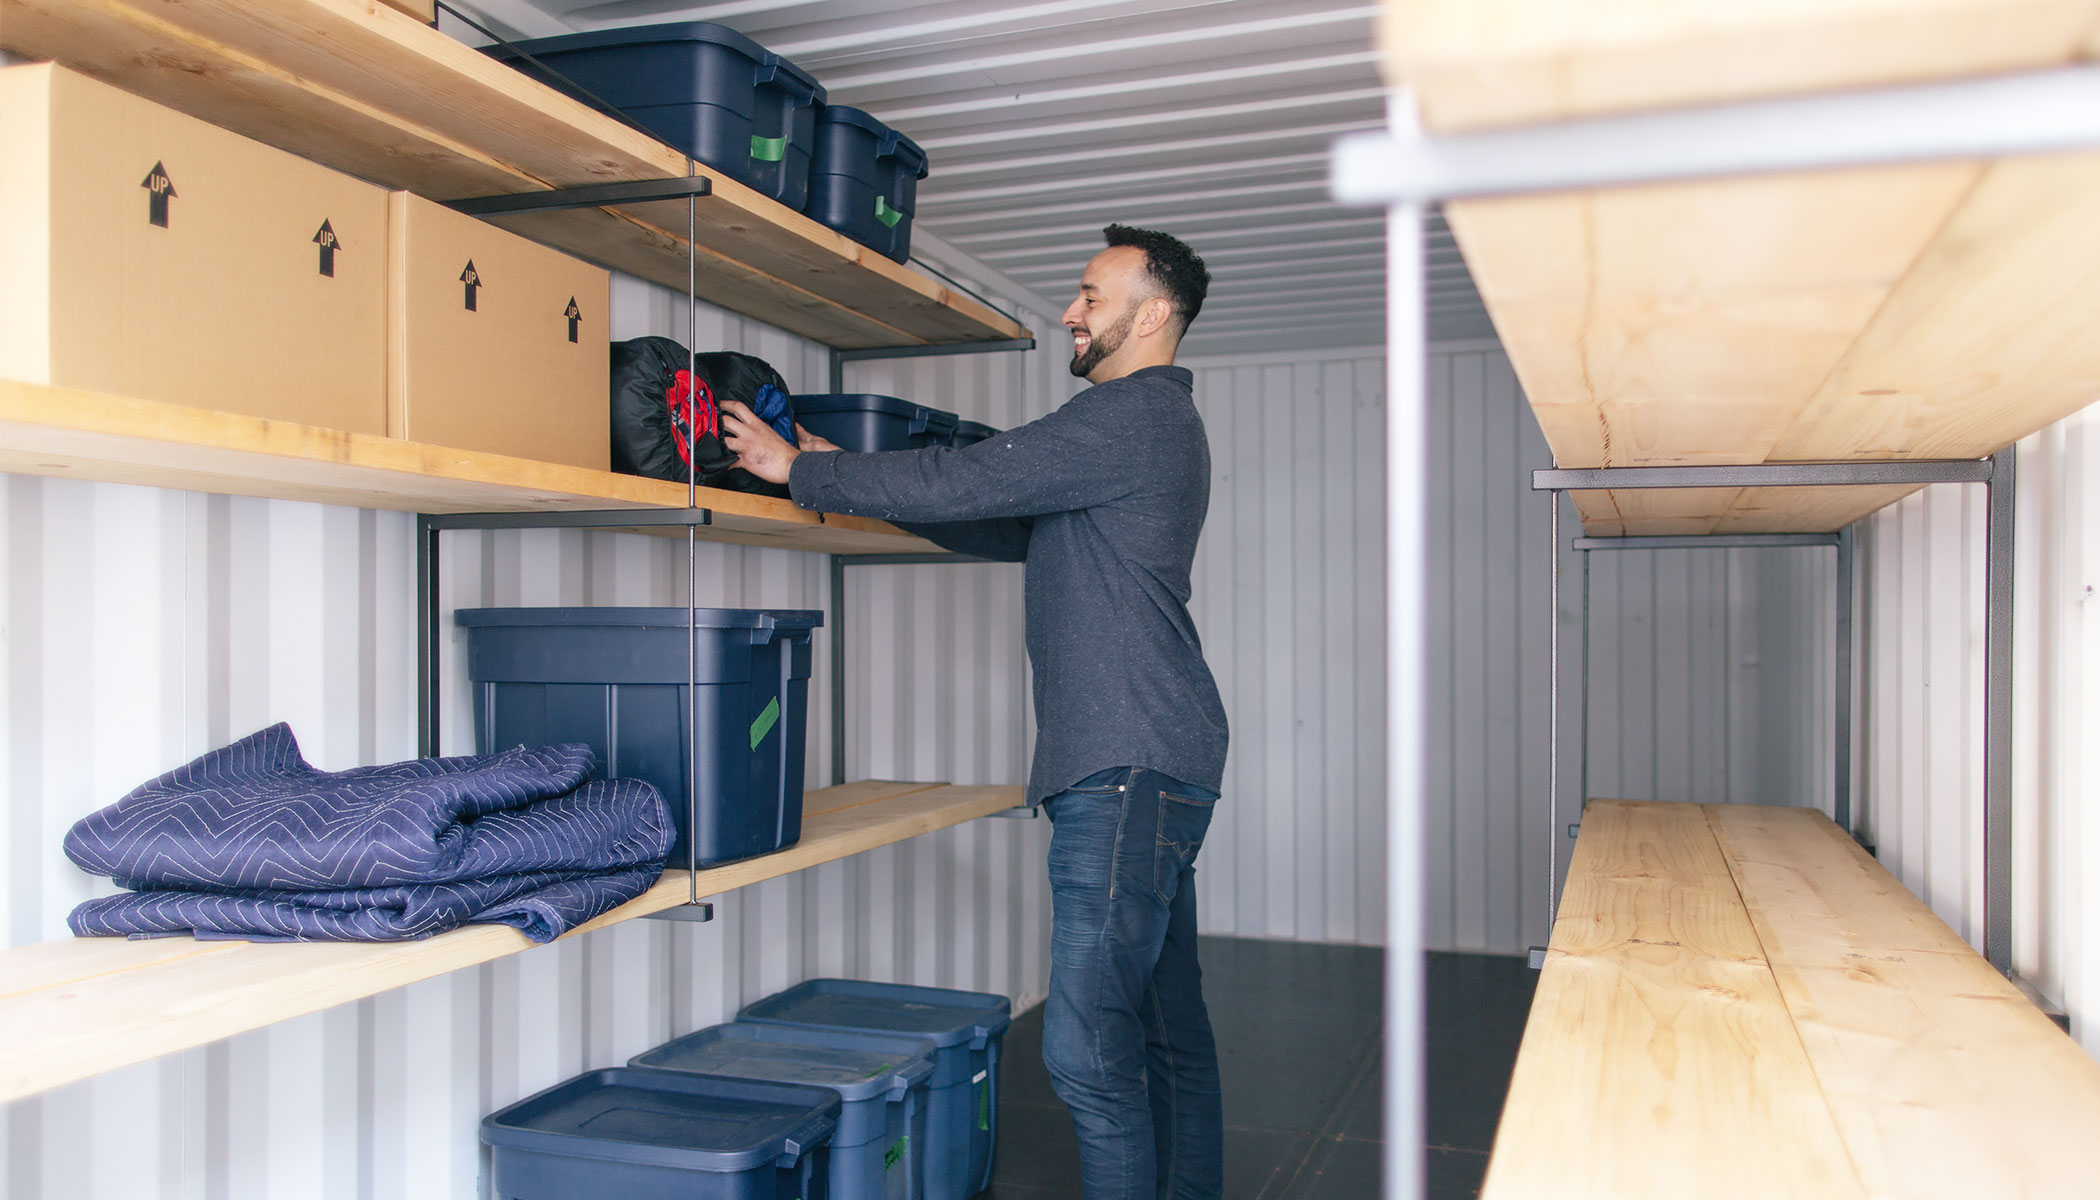 7 Great Ways to Use a Portable Storage Container - BigSteelBox